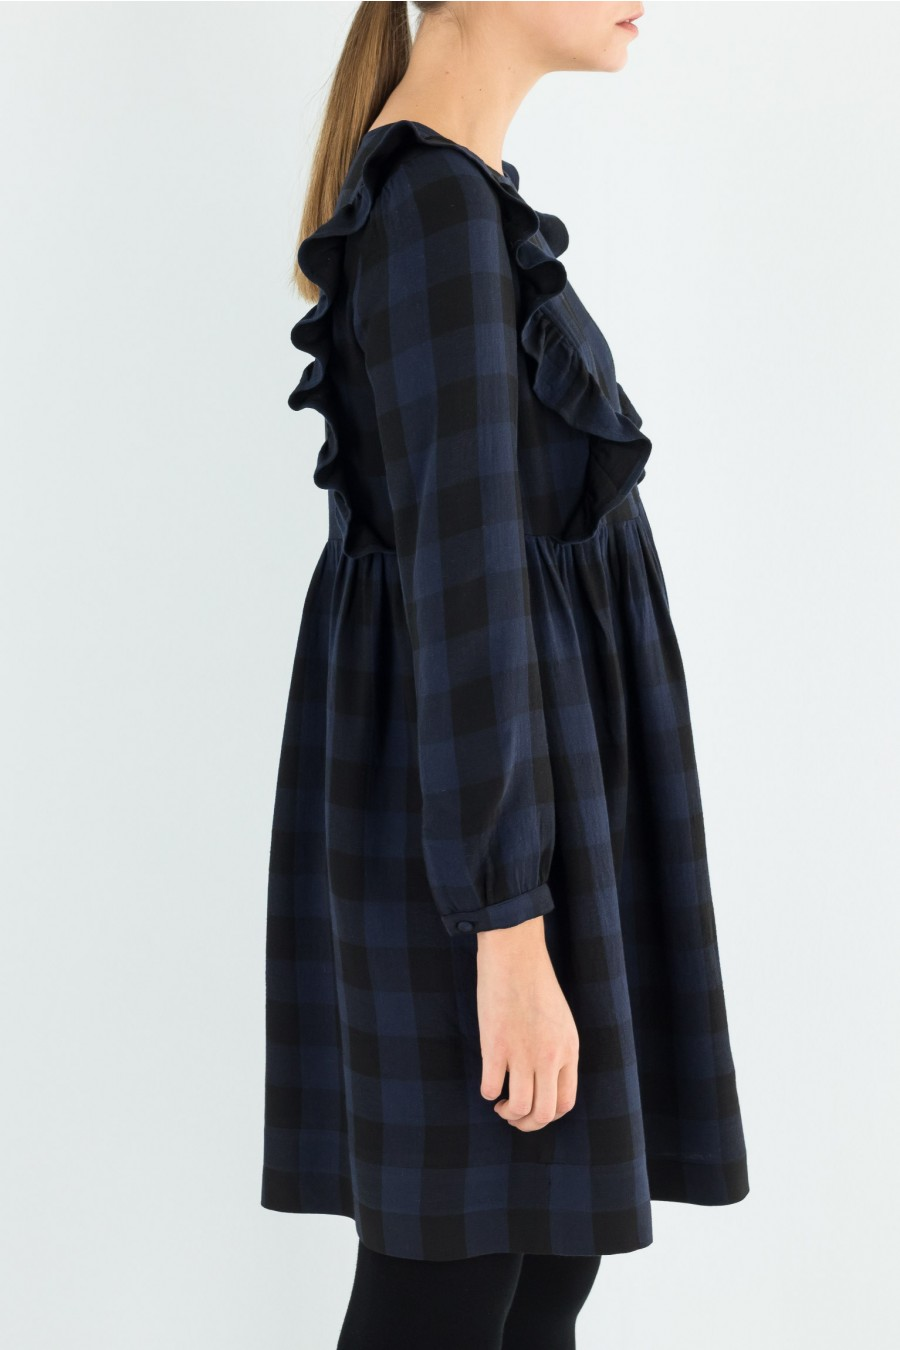 Blue and black dress with ruffle